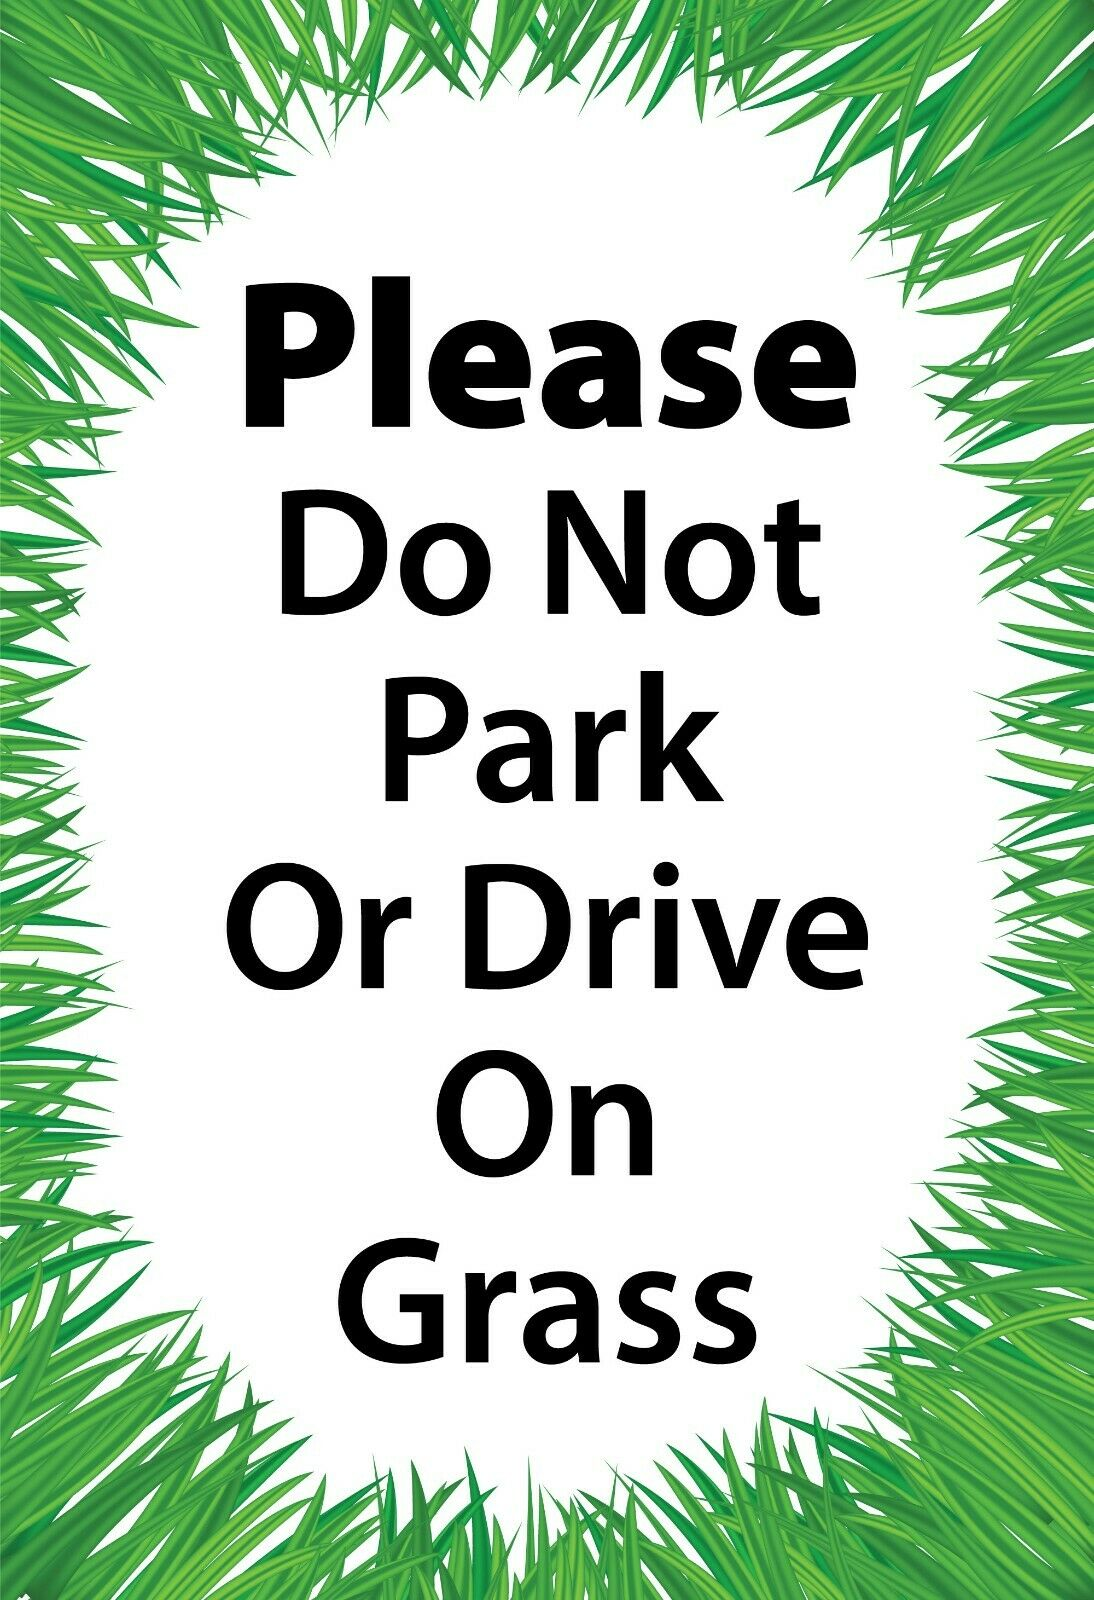 Please Do Not Drive Or Park on Grass Yard Sign For Outdoors by Memory Cross